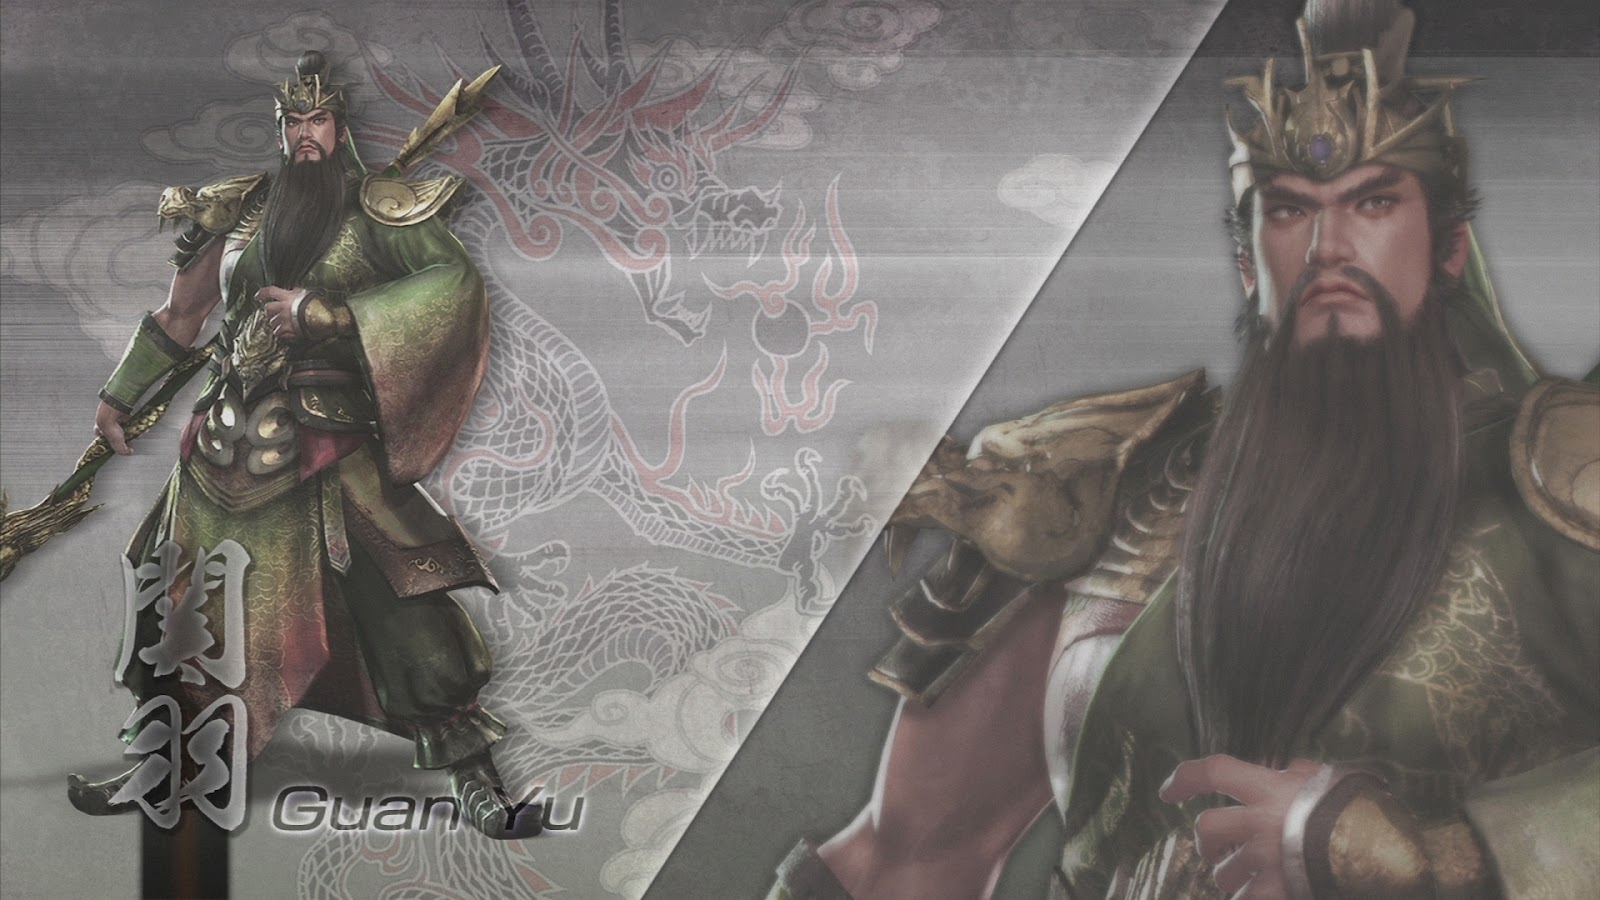 http://3.bp.blogspot.com/-OqexdaNcO84/UBVVYej9y-I/AAAAAAAAFDE/_WpNAQ6RSXI/s1600/dynasty+warriors+7+wallpapers+8.jpg